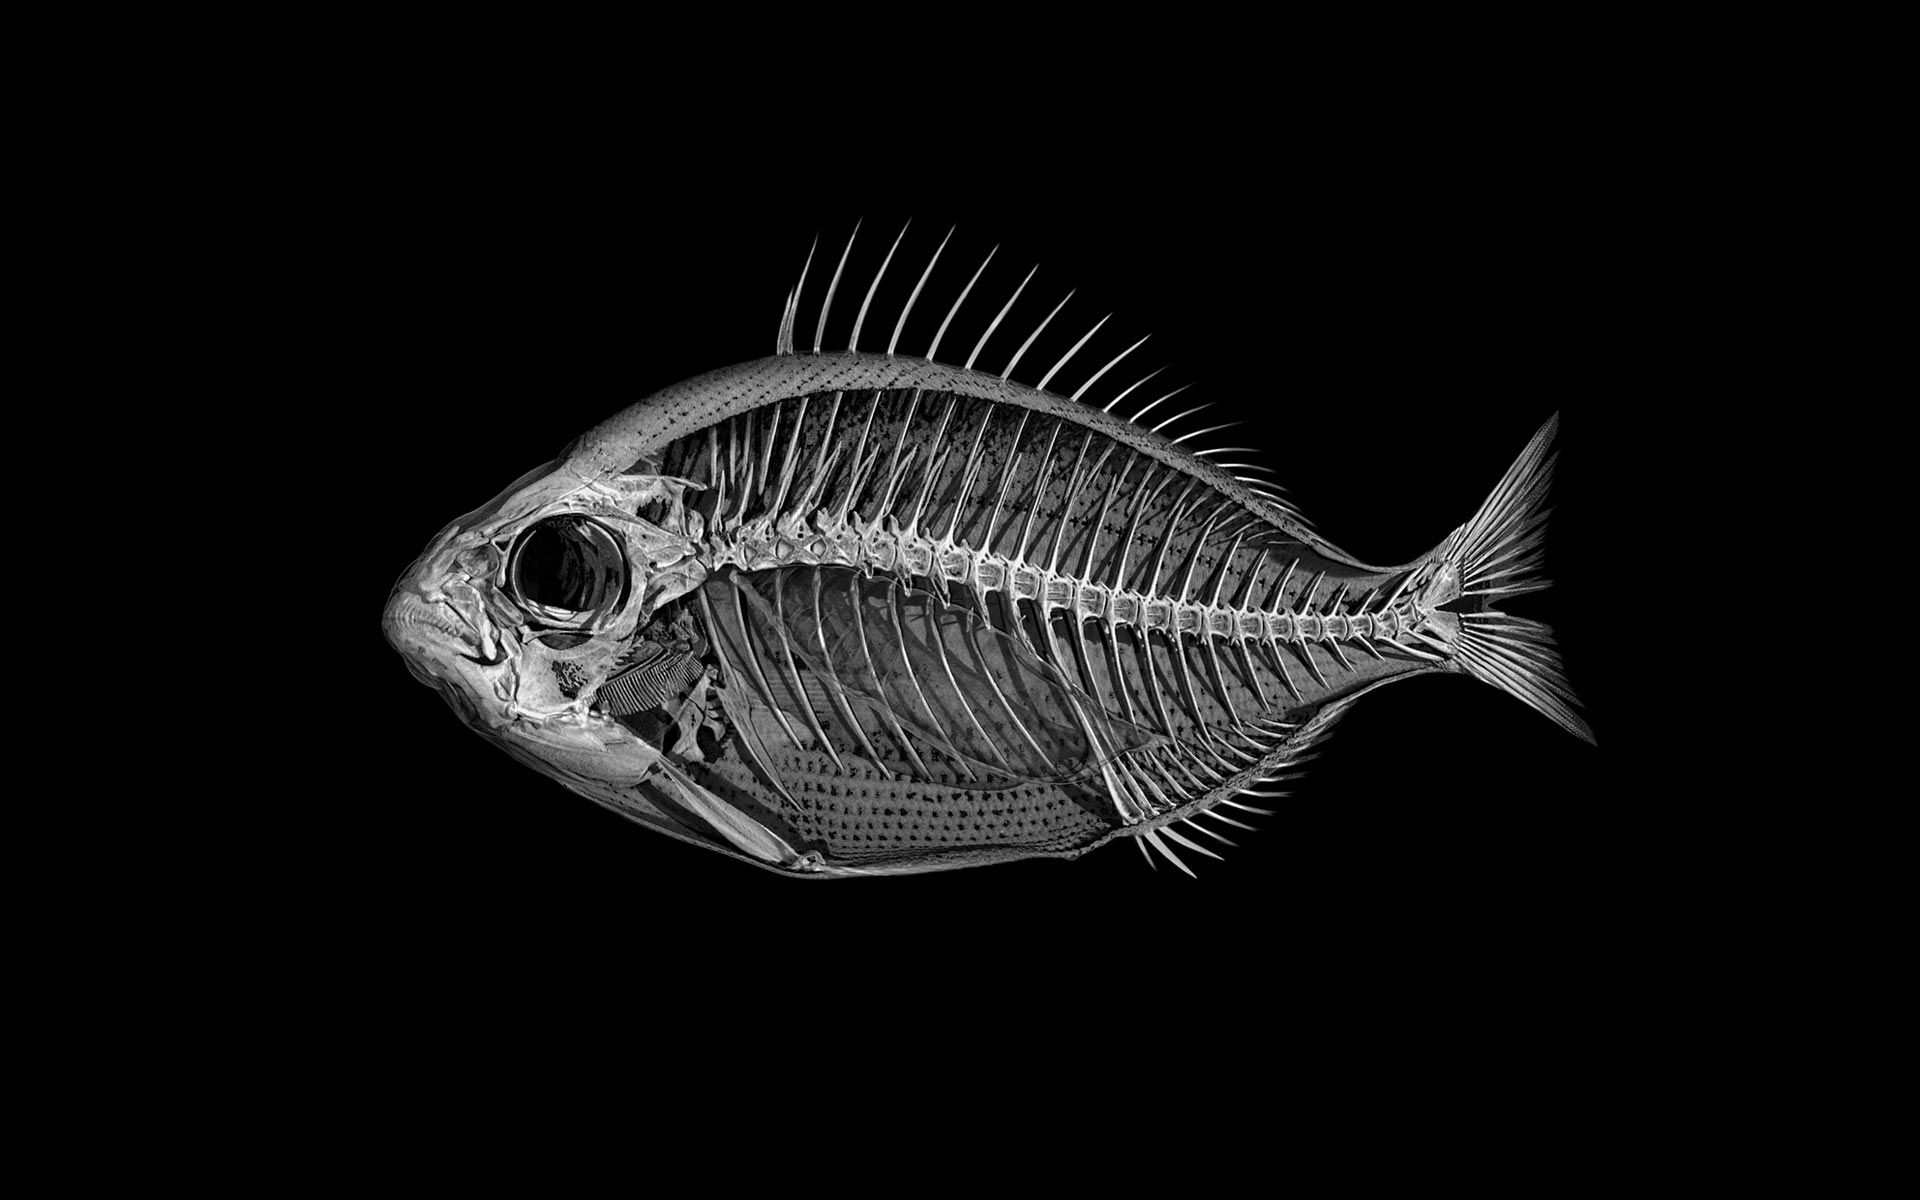 Marble catfish skeleton photo